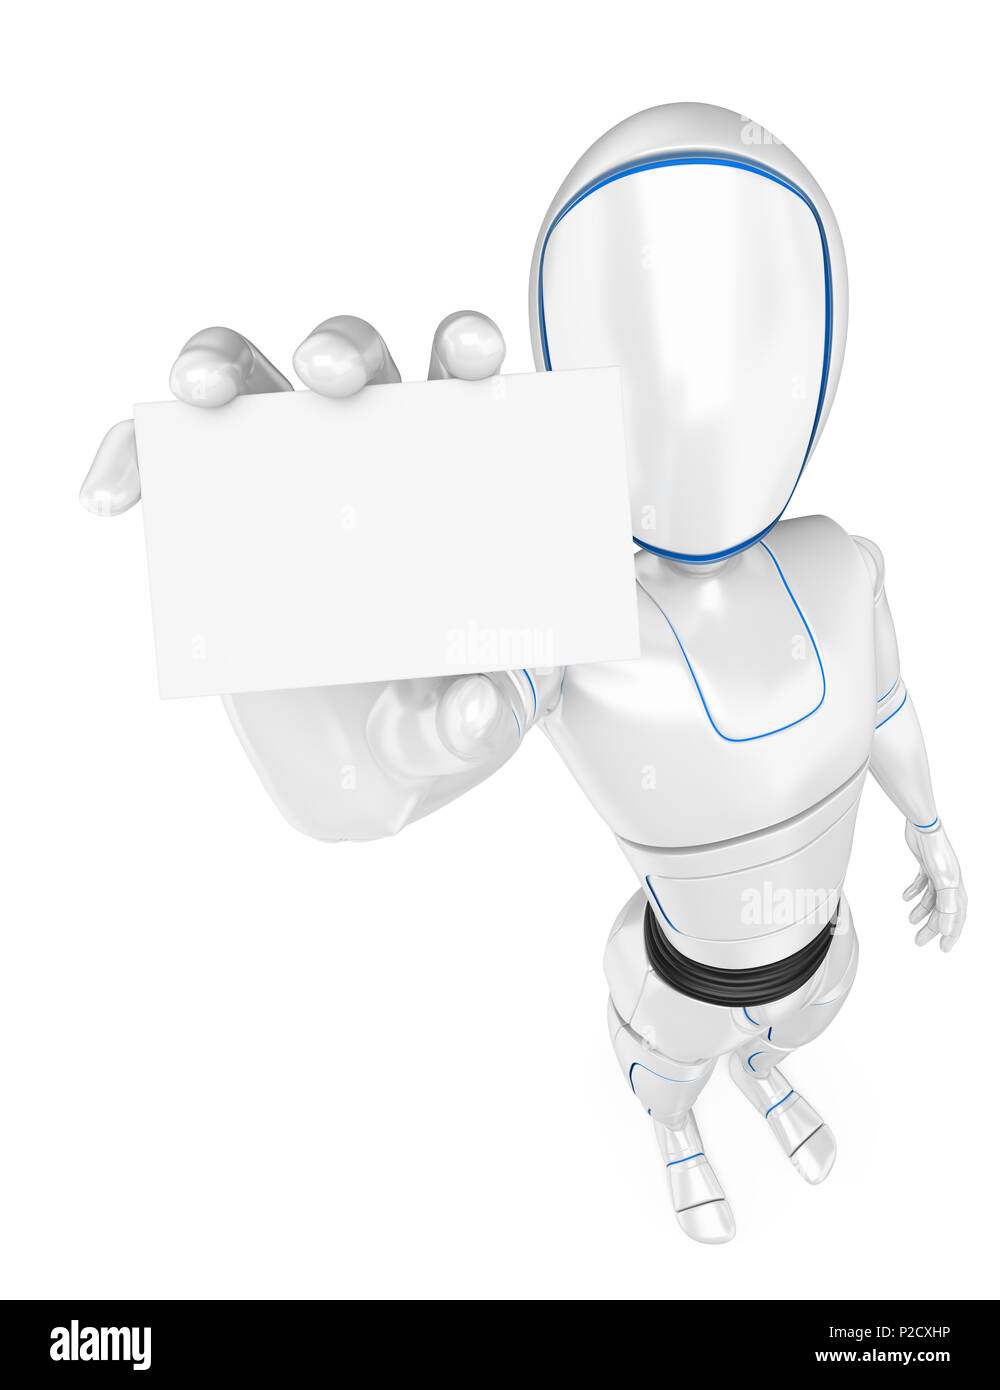 3d futuristic android illustration. Humanoid robot standing with a blank card. Isolated white background. - Stock Image